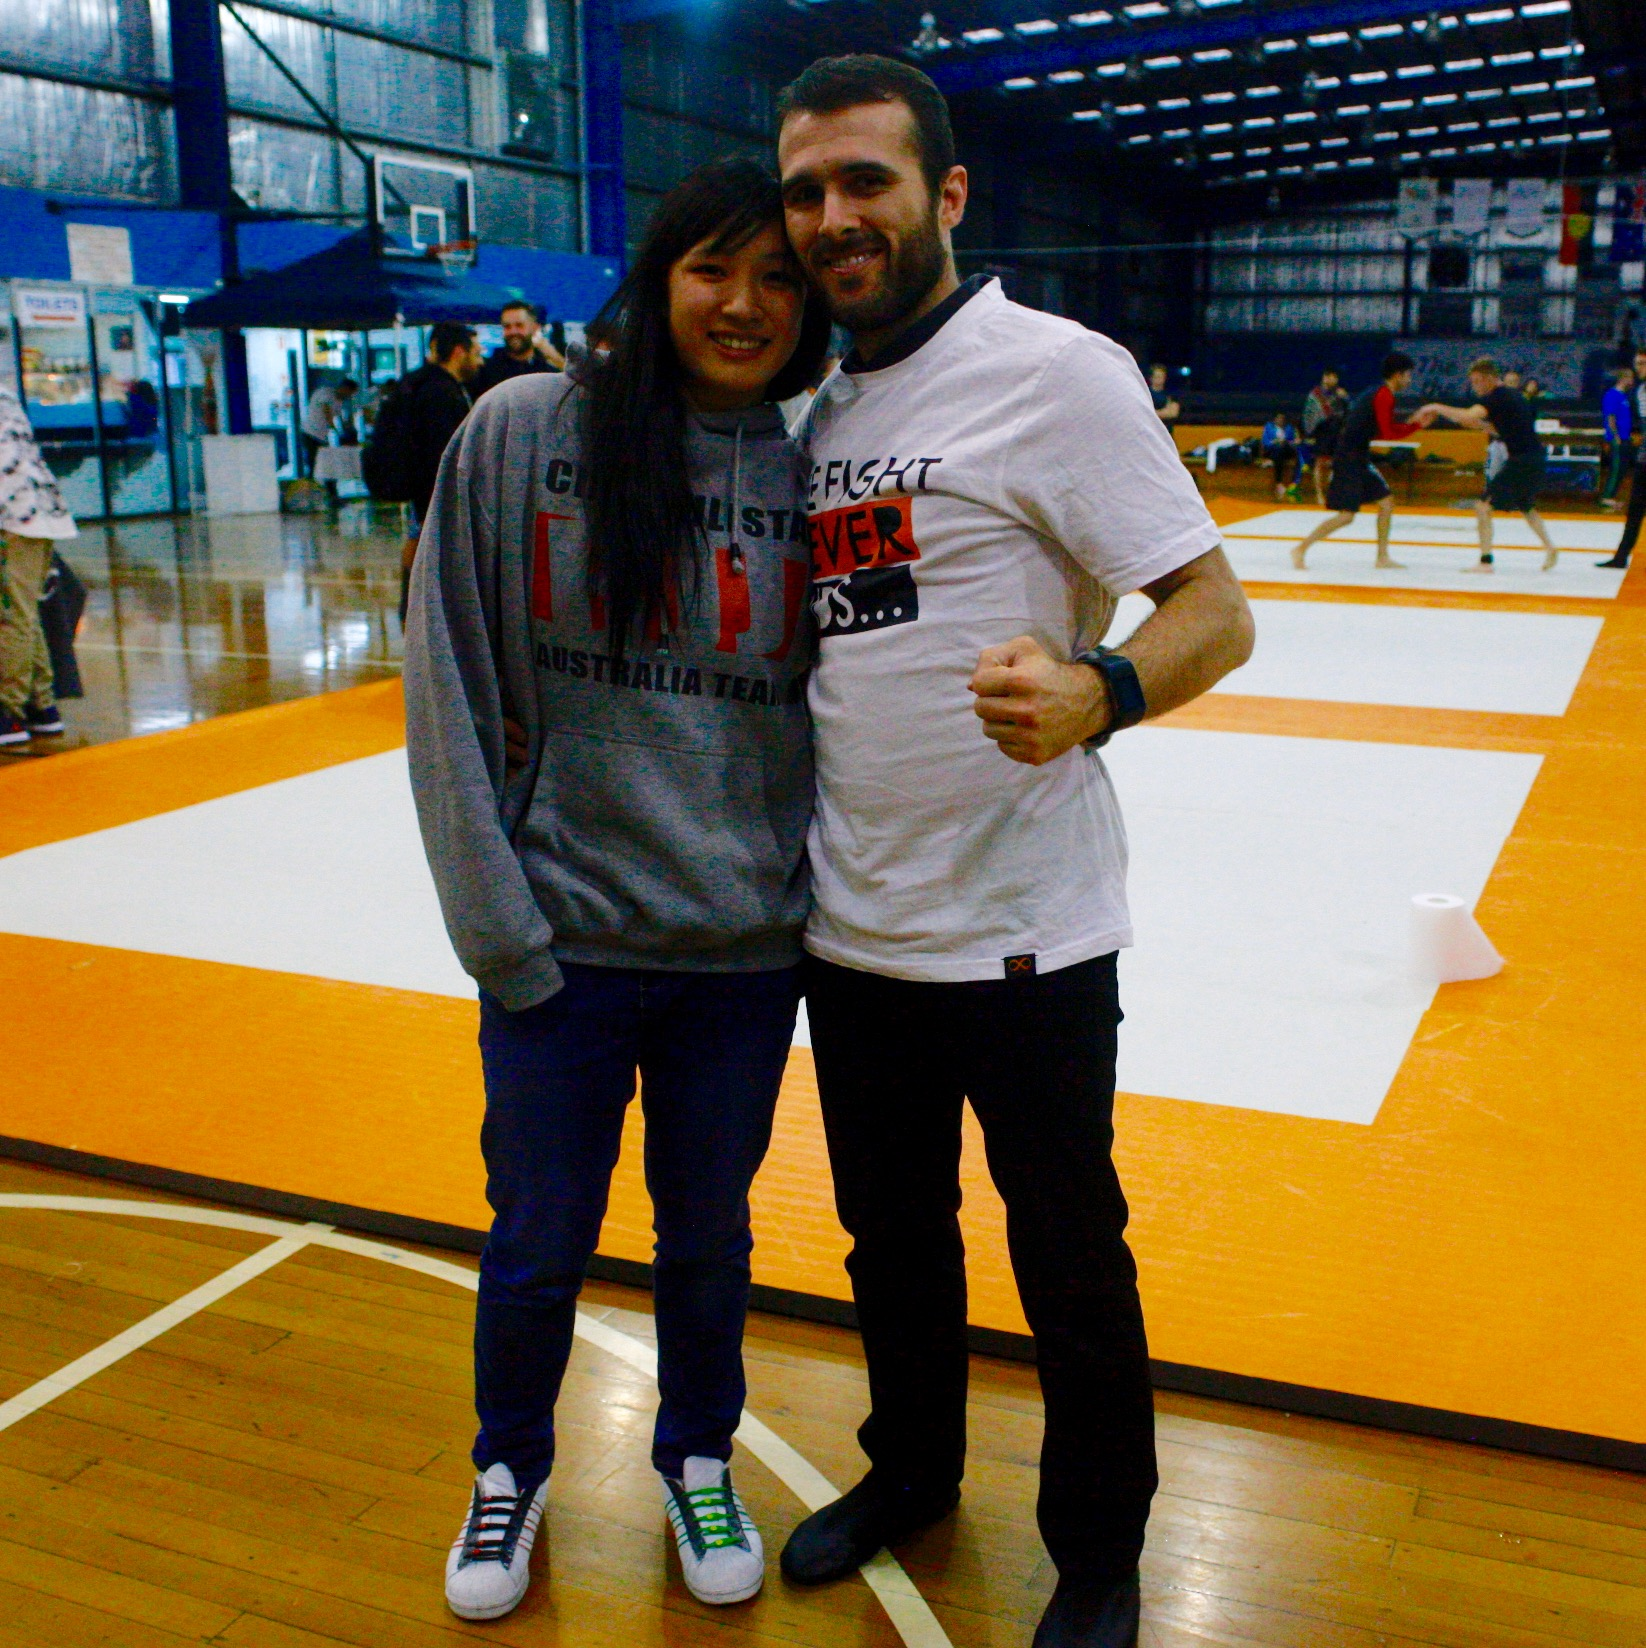 Coach Marcel Leteri Sasso de Oliveira, referee and coach at